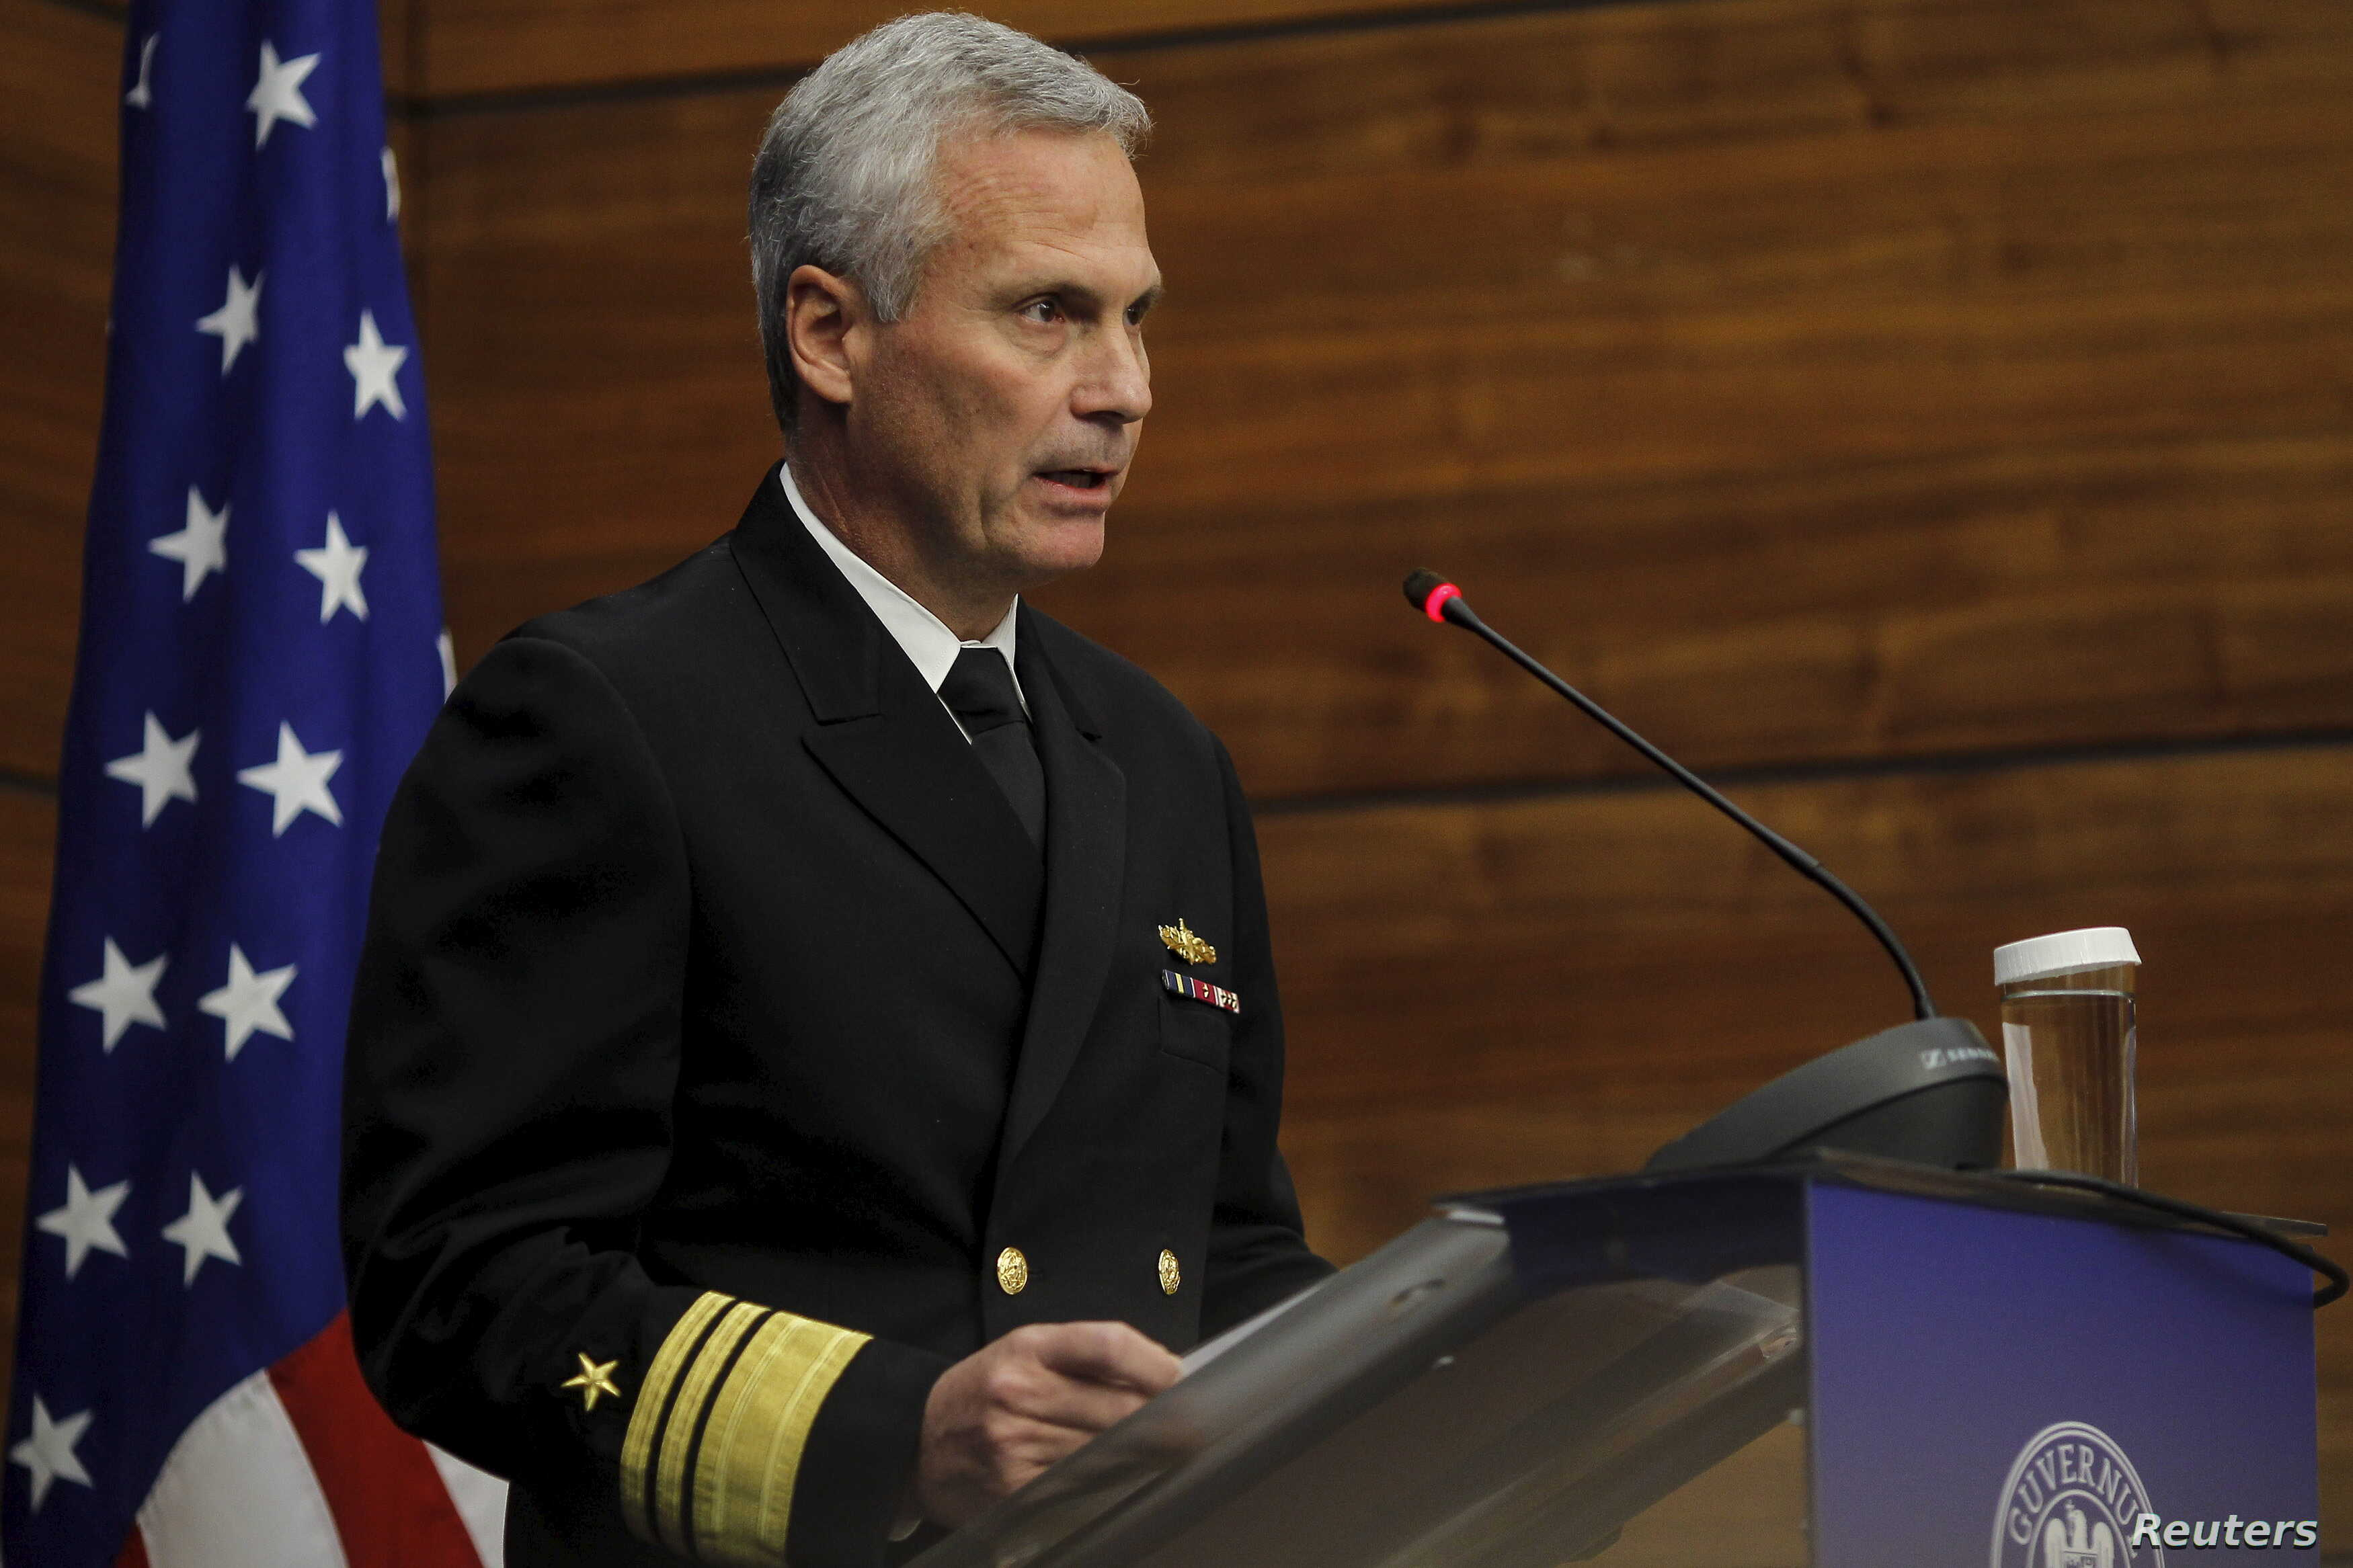 """Vice Admiral James Syring, shown speaking at the Romanian Foreign Affairs Ministry in Bucharest, Dec. 18, 2015, says the U.S.  taken """"inordinate"""" measures to defend its own missile defense networks, but he remains concerned about potential vulnerabil..."""